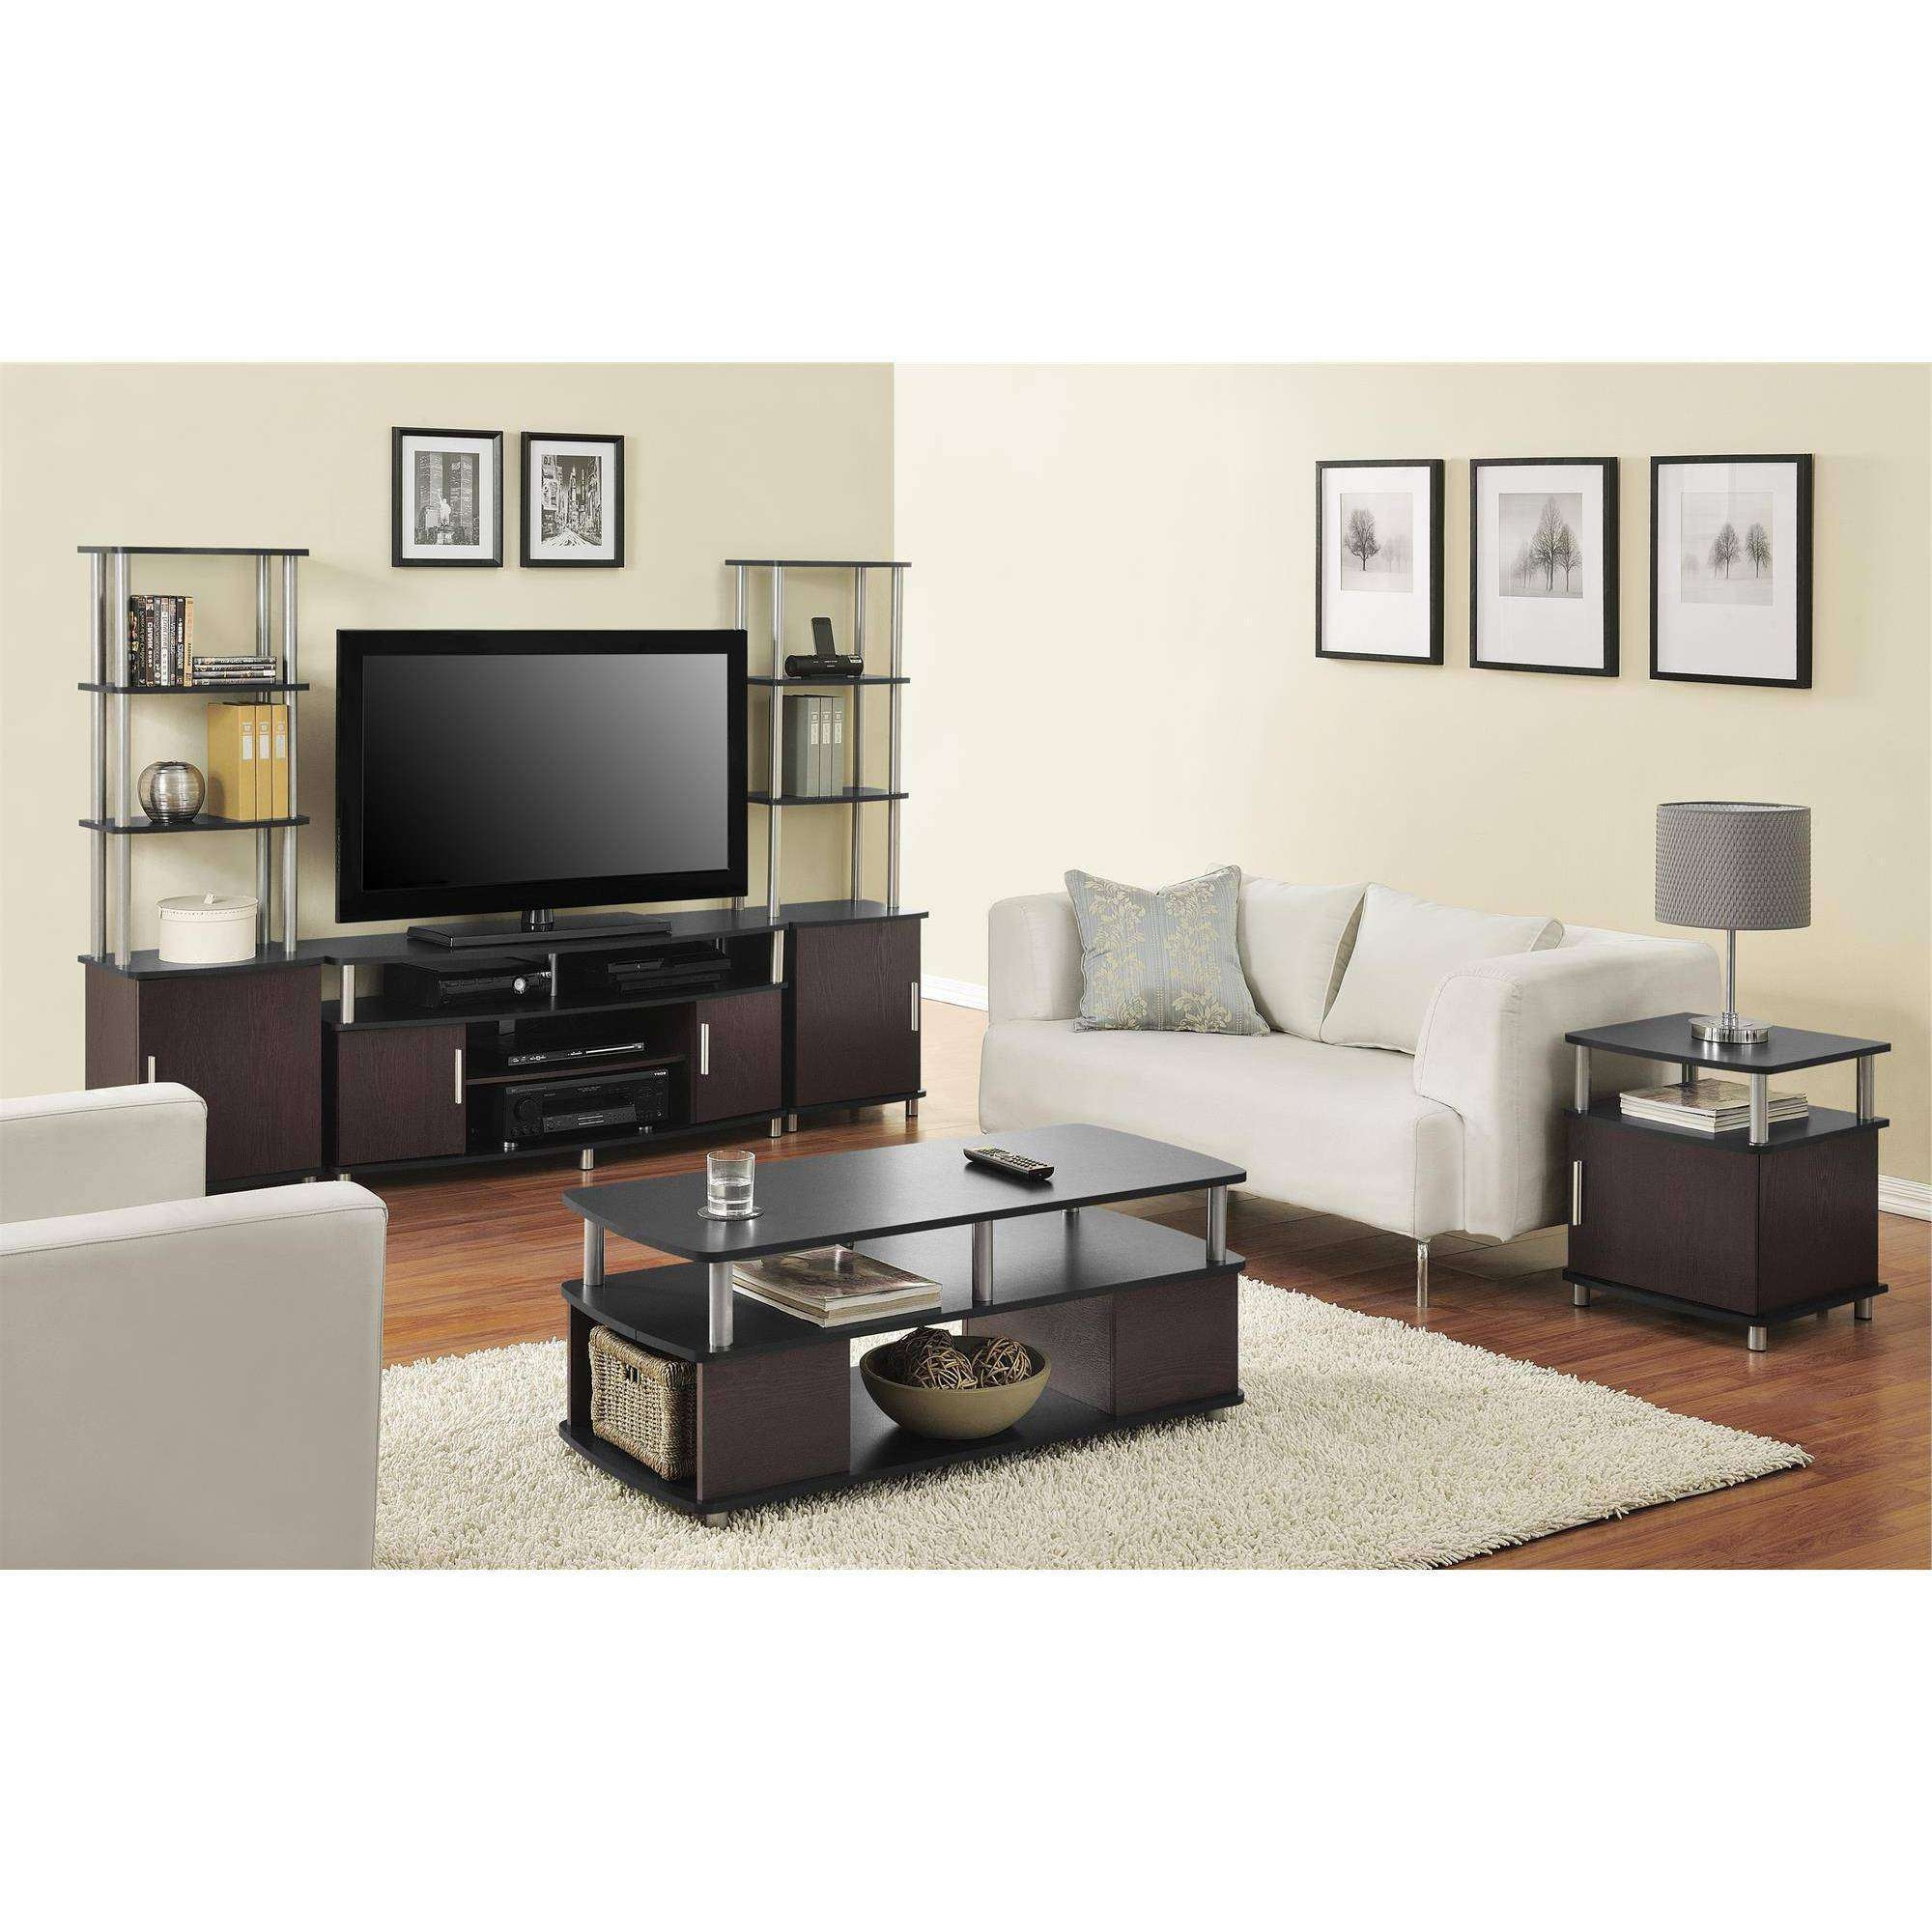 Coffee Table : Whalen Brown Cherry In Flat Panel Tv Stand For Tvs Pertaining To Coffee Tables And Tv Stands Matching (View 8 of 15)